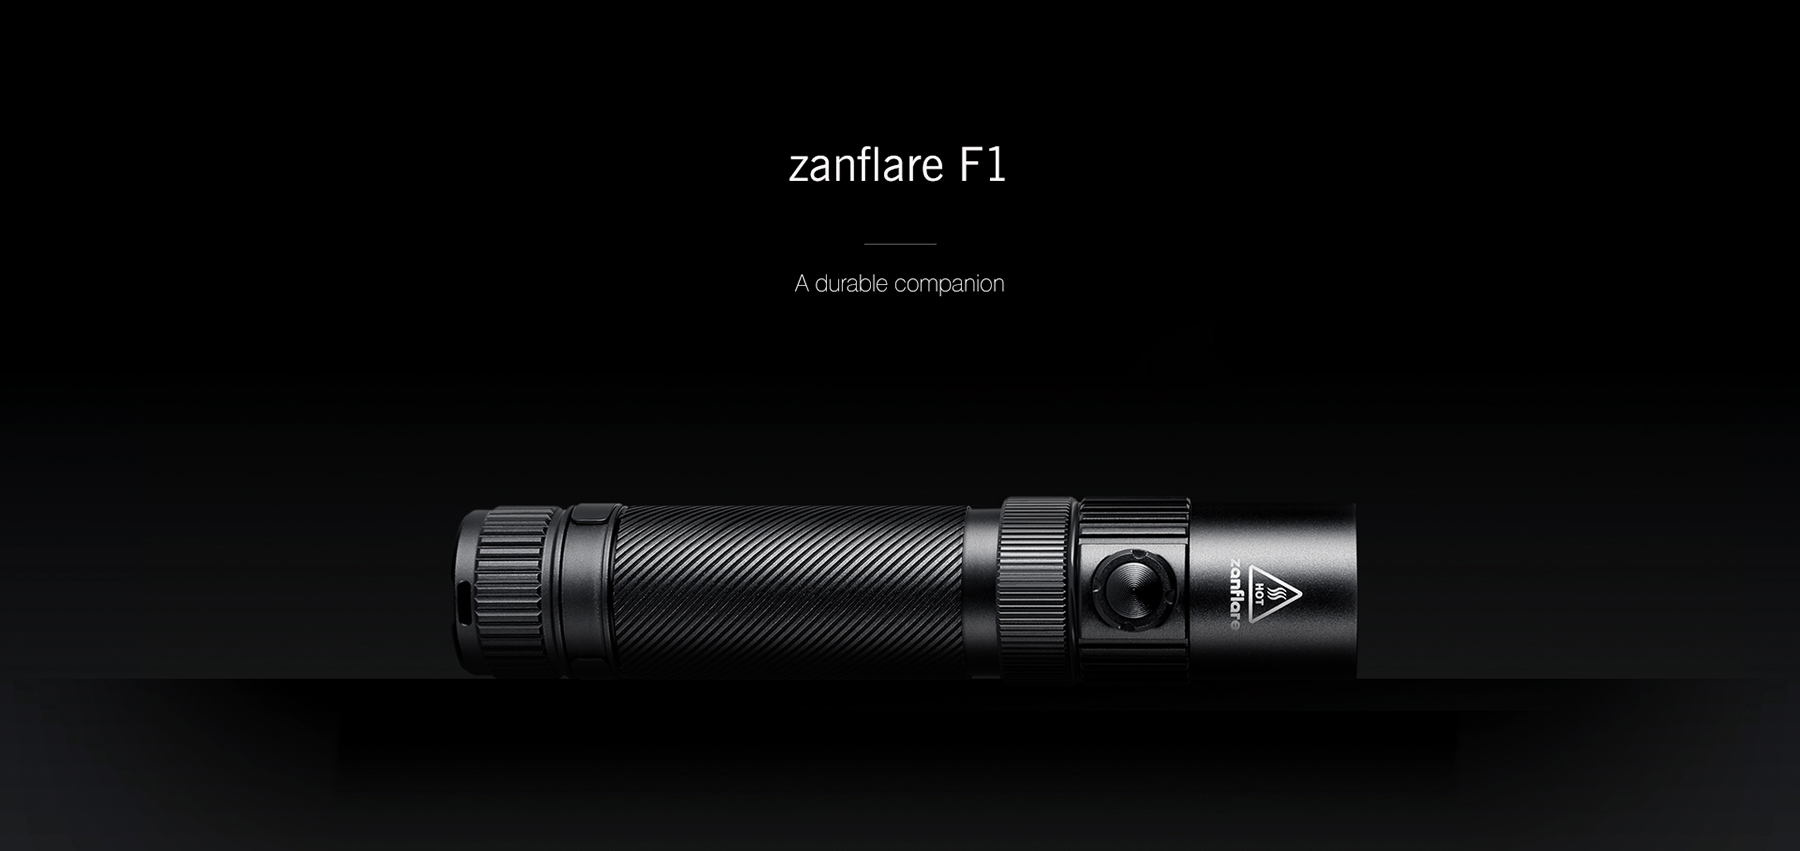 zanflare F1 Cree XPL V6 1240Lm Rechargeable LED Flashlight